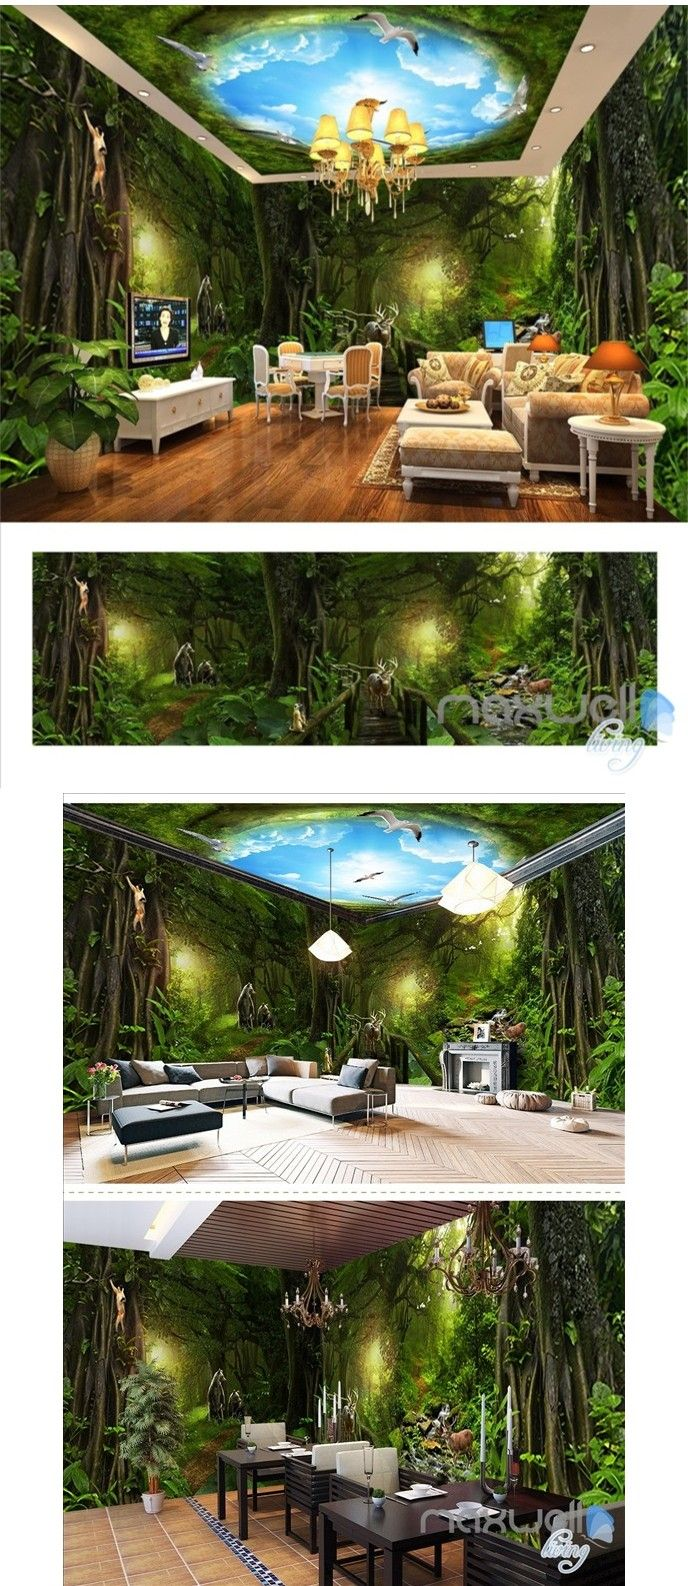 Deep Forest Forest Theme Space Entire Room Wallpaper Wall Mural Decal  IDCQW 000018 Part 58